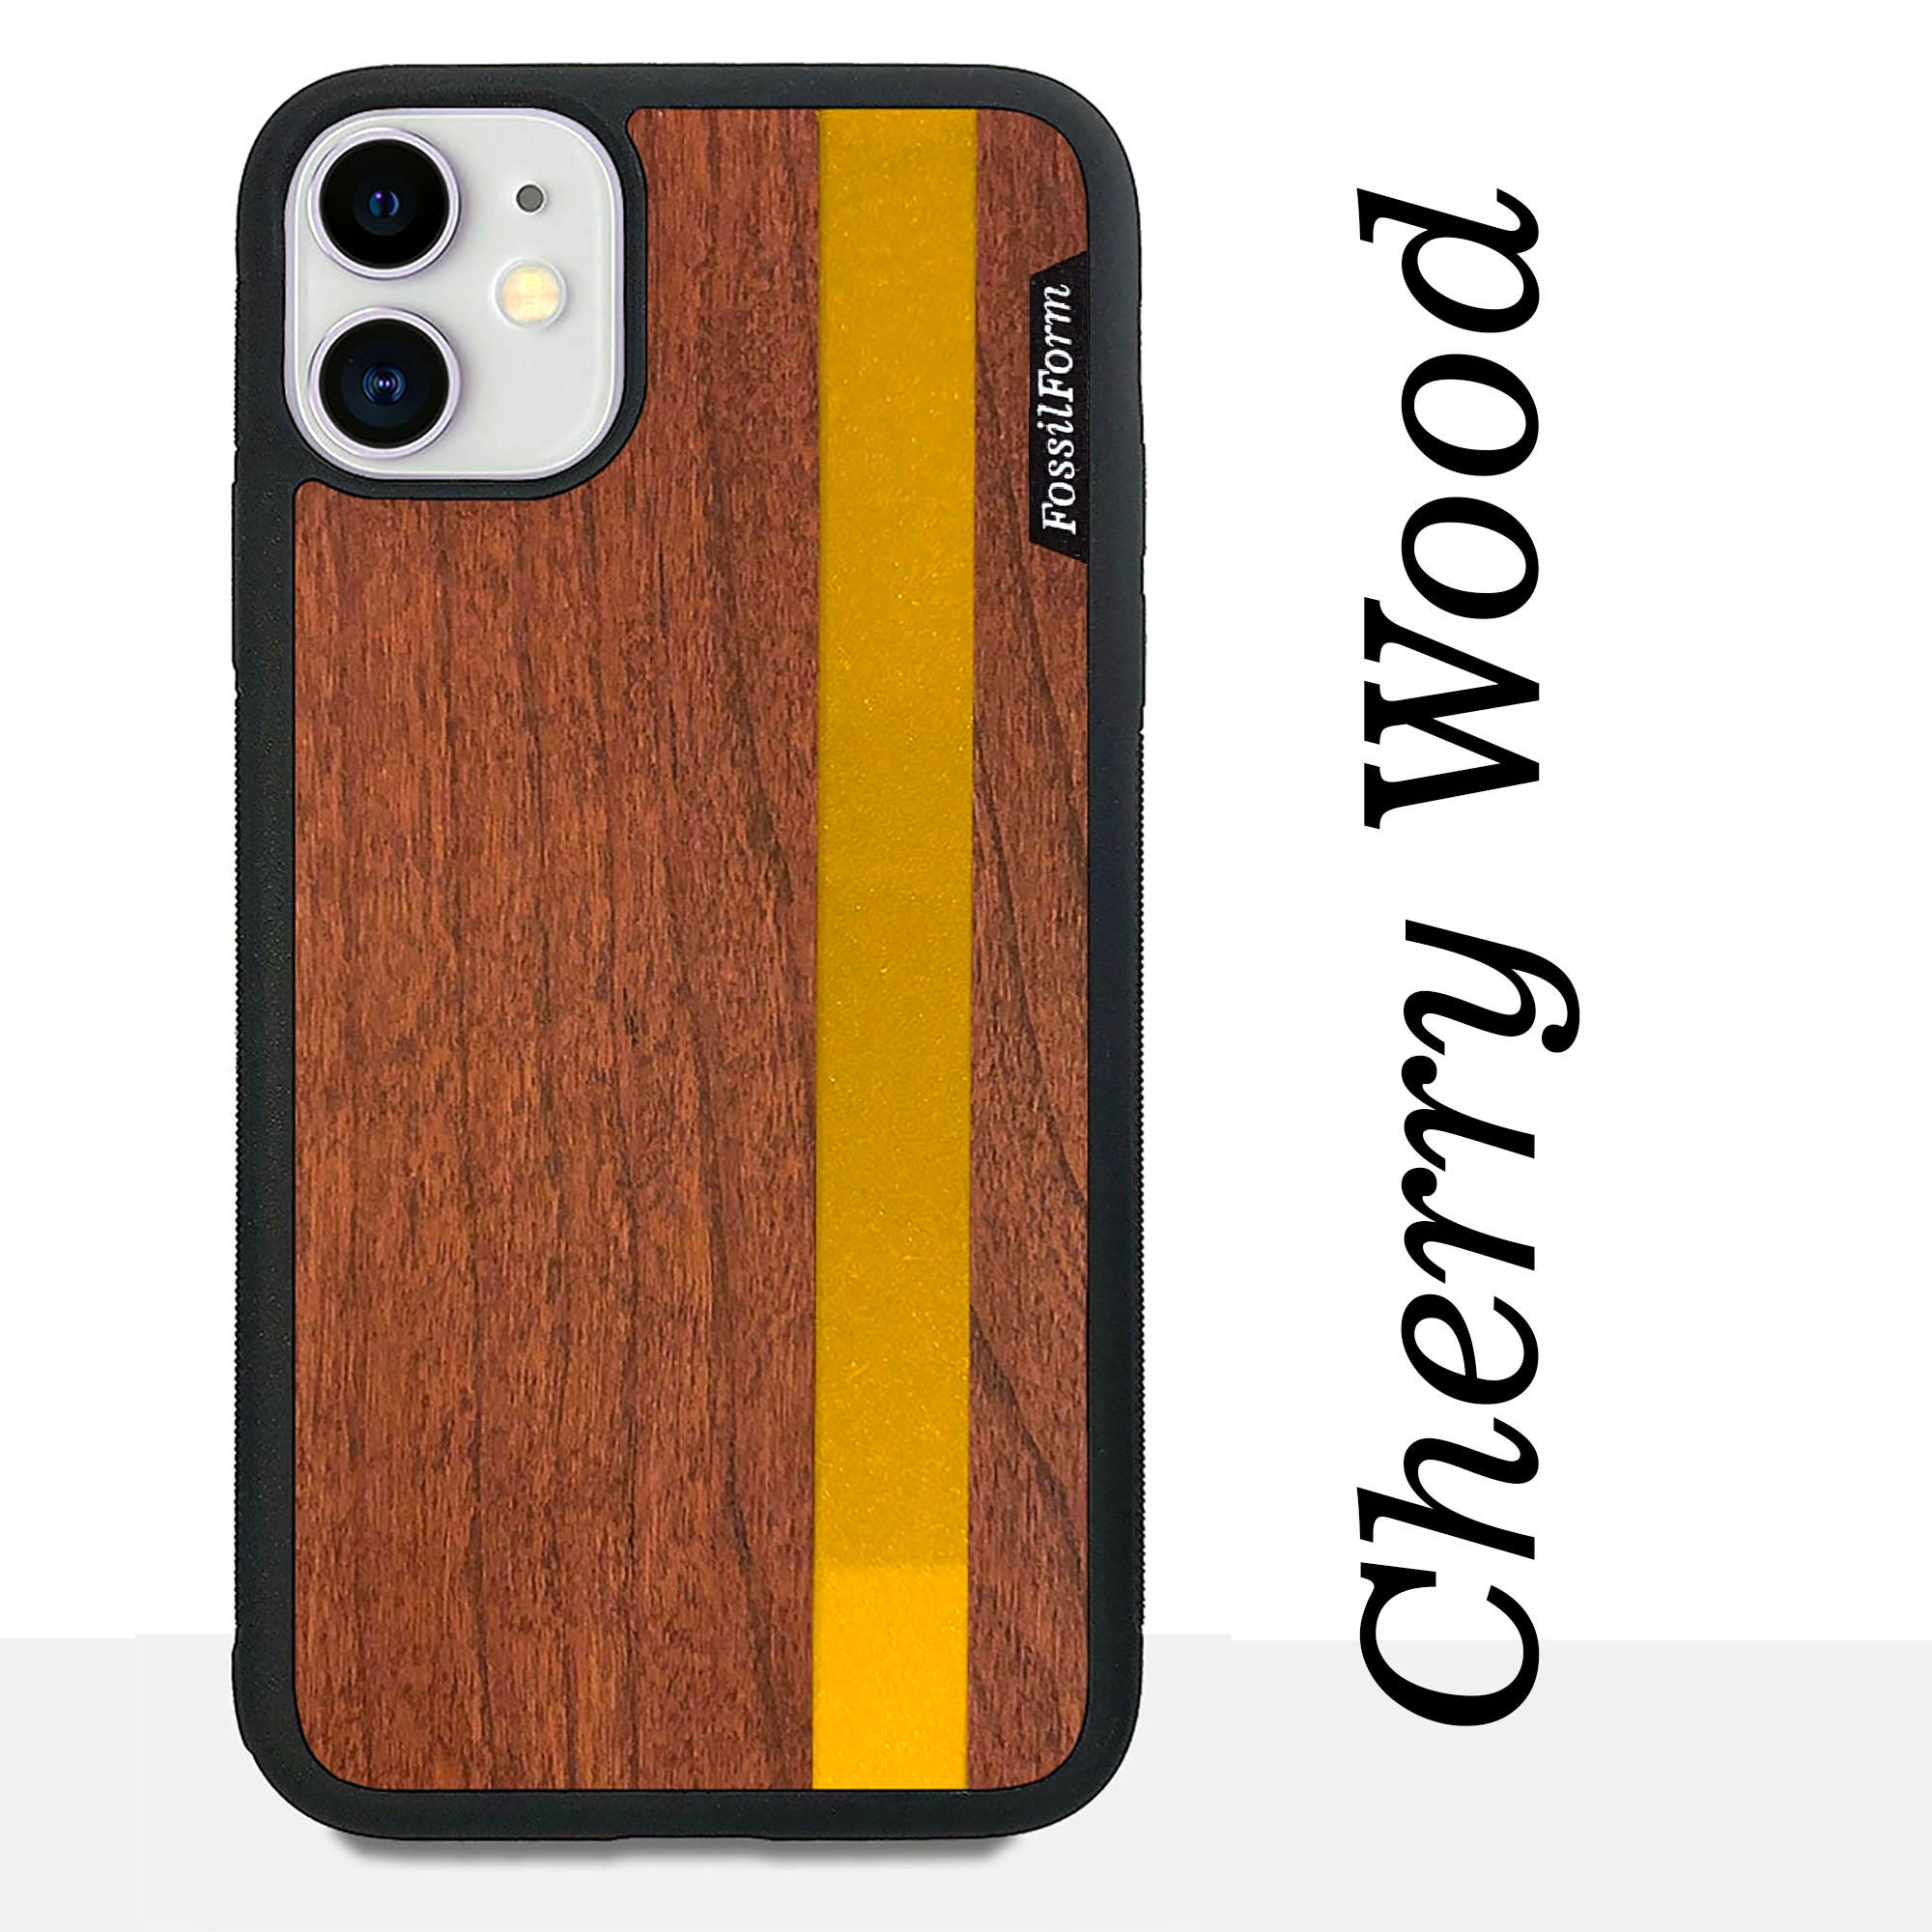 Gold Stripe - Gold Color Vertial Line - Wood & Resin Case - Black